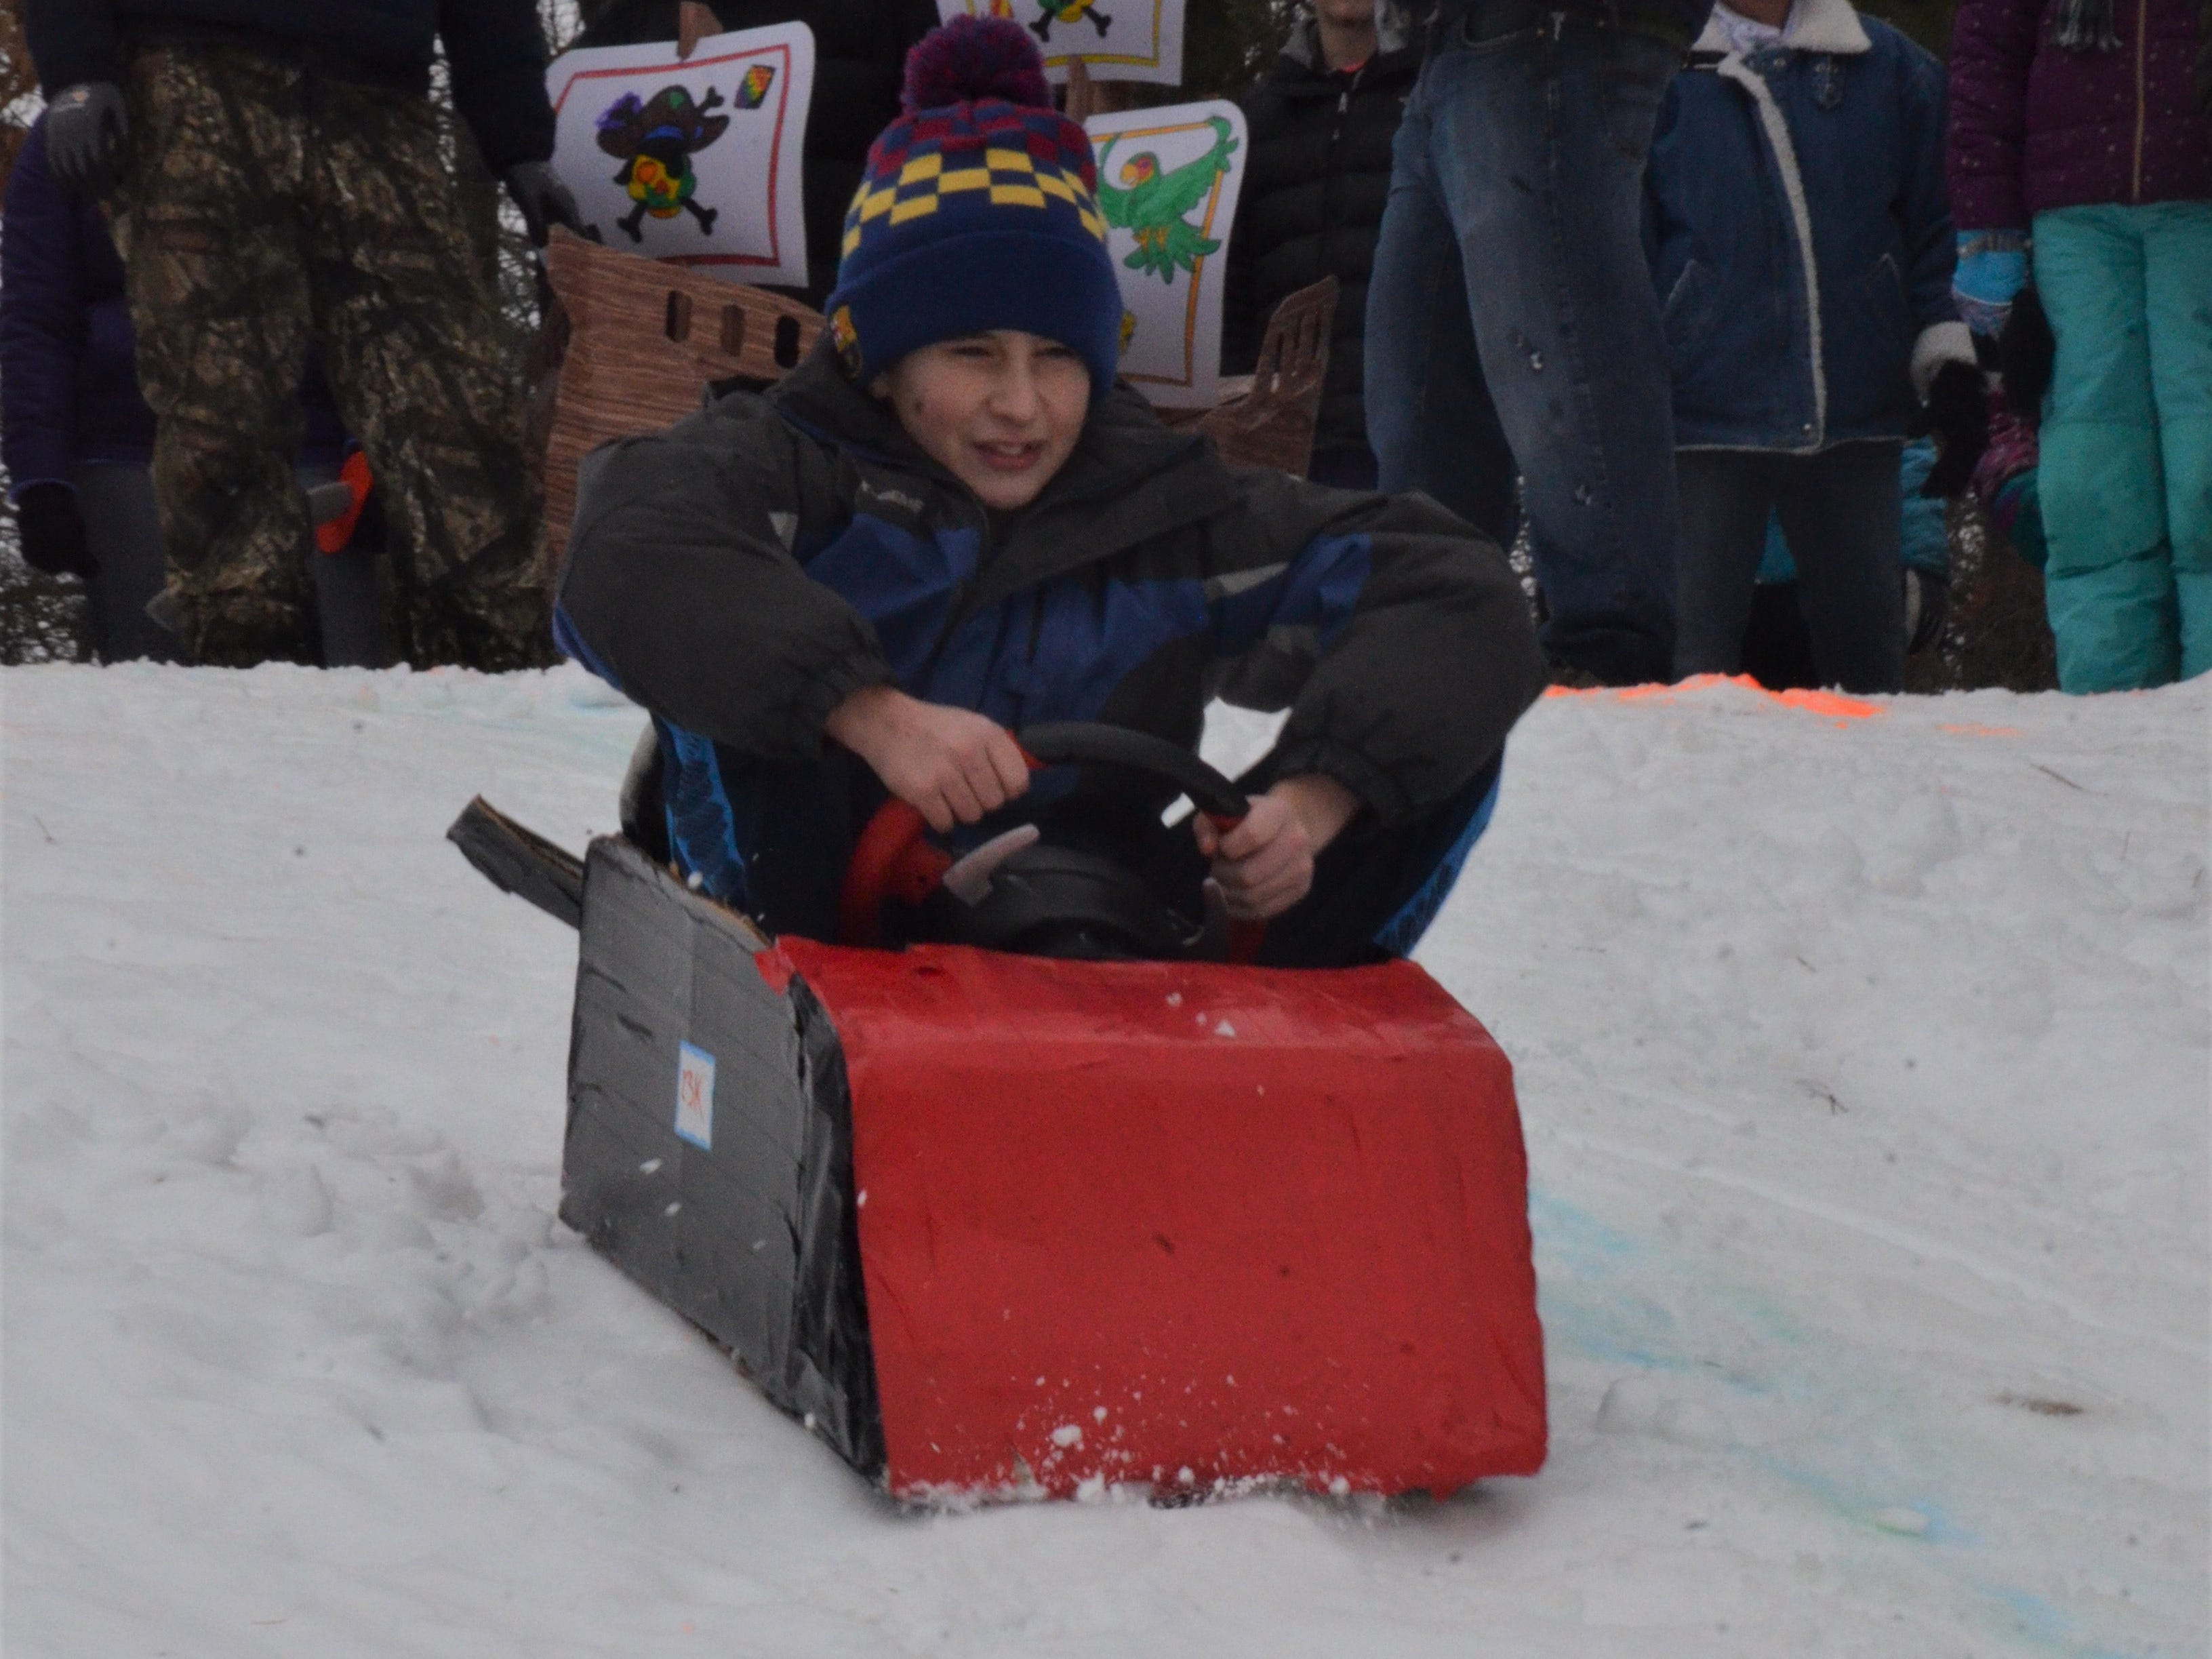 The 2019 Festivus cardboard sled race, hosted by the Battle Creek Metropolitan Area Moustache Society on Saturday, Feb. 2, 2019 at Leila Arboretum.